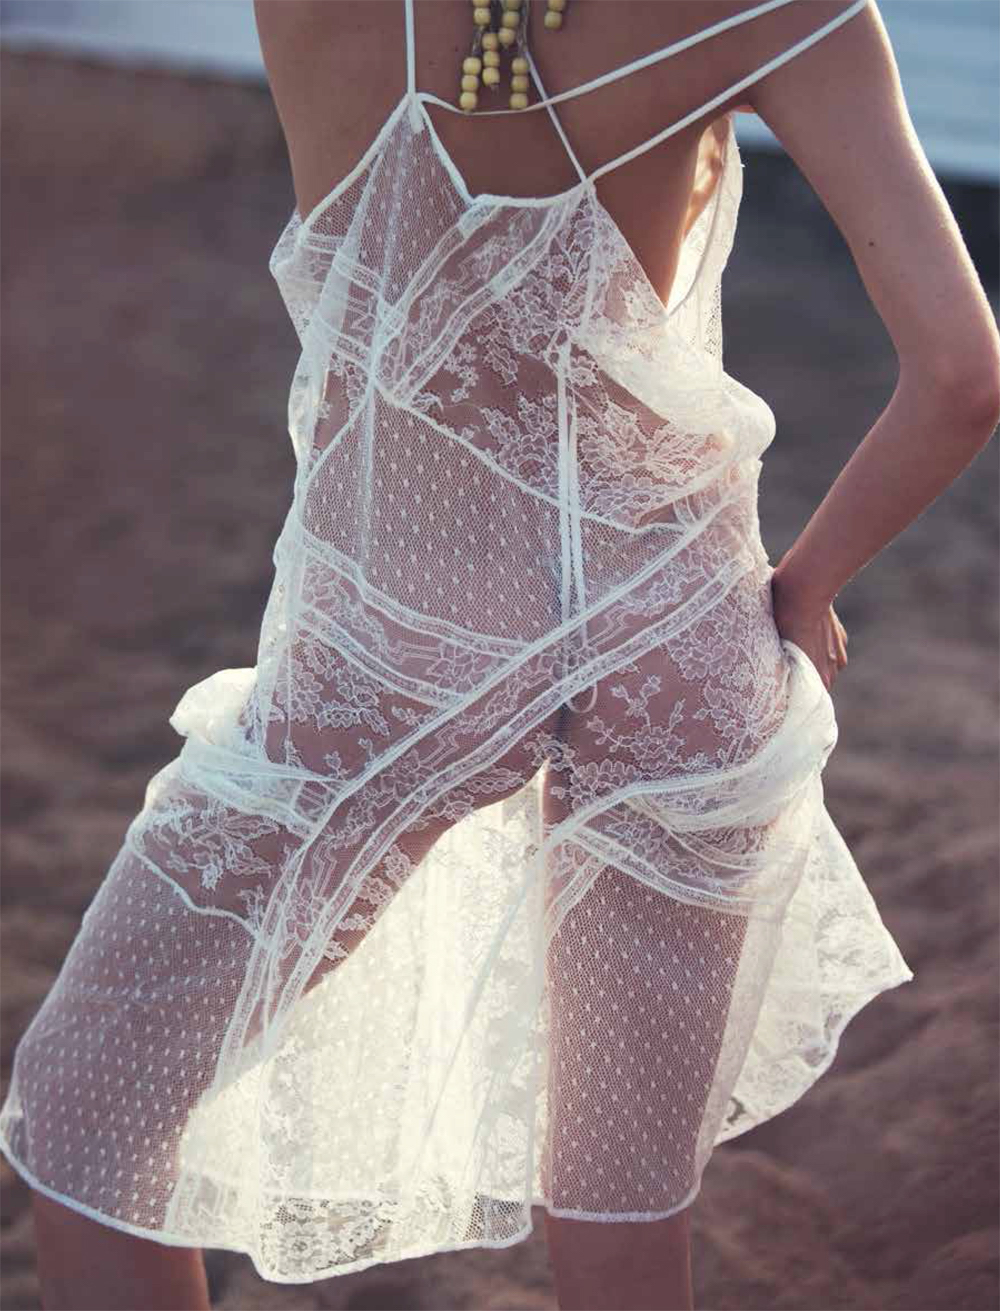 4-tosca-dekker-aishti-magazine-david-bellemere-sheer-lace-oracle-fox